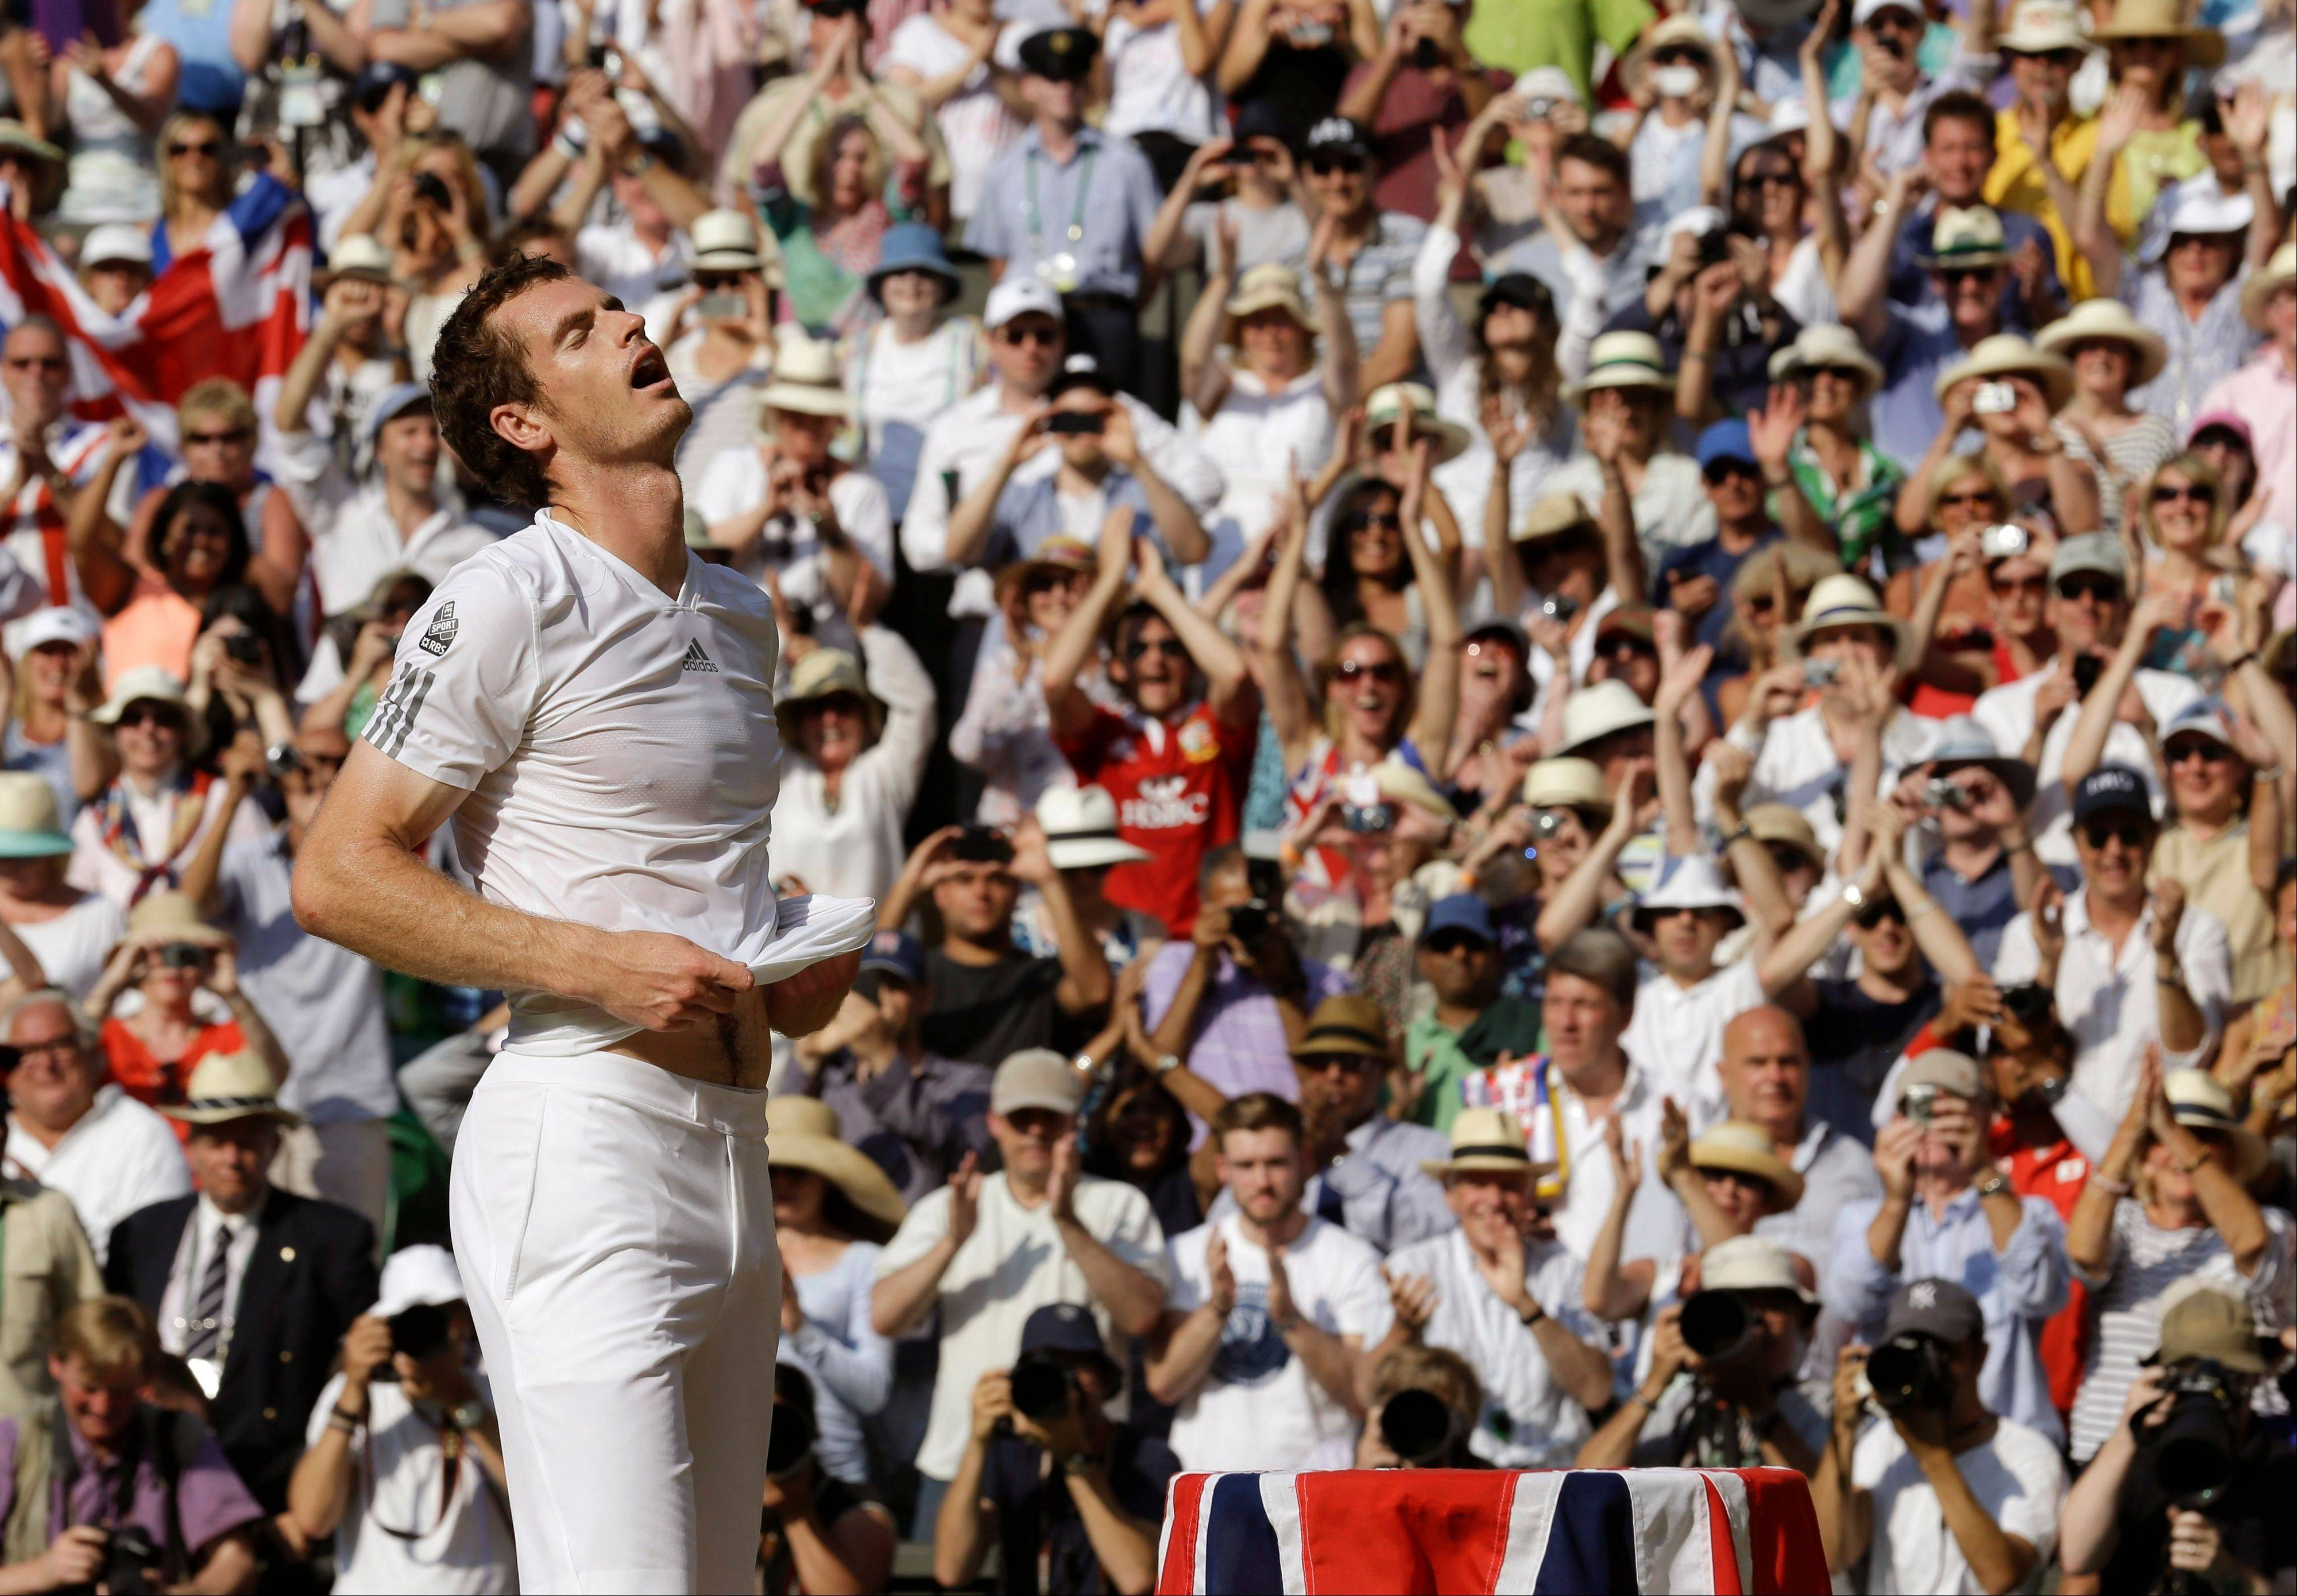 Andy Murray of Britain reacts as he wins against Novak Djokovic of Serbia during the Men's singles final match at the All England Lawn Tennis Championships in Wimbledon, London, Sunday, July 7, 2013.